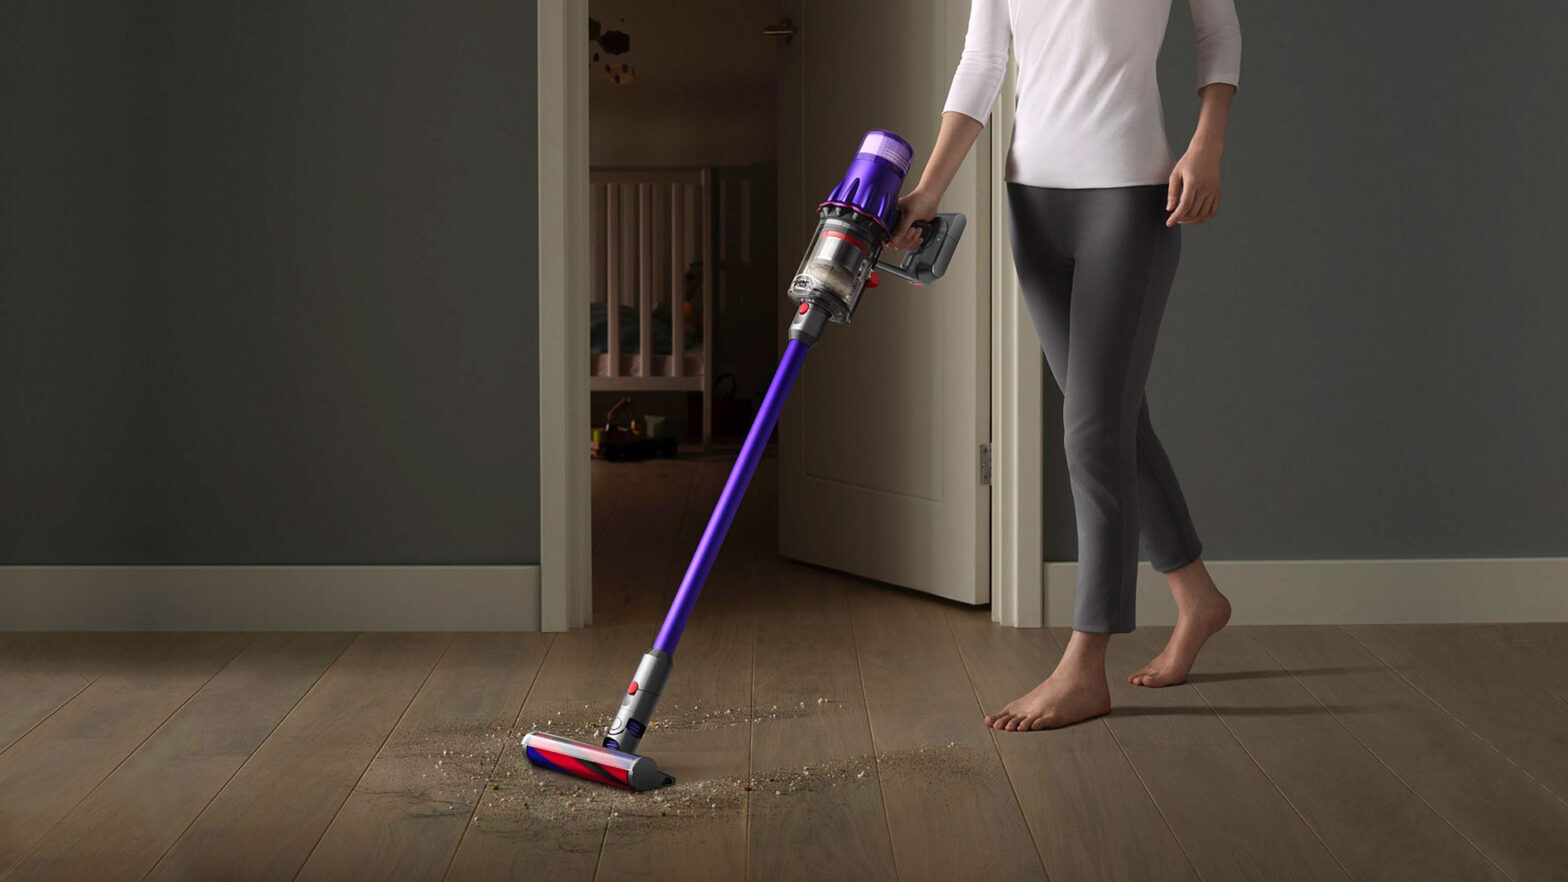 Dyson Digital Slim Cordless Stick Vacuum Cleaner